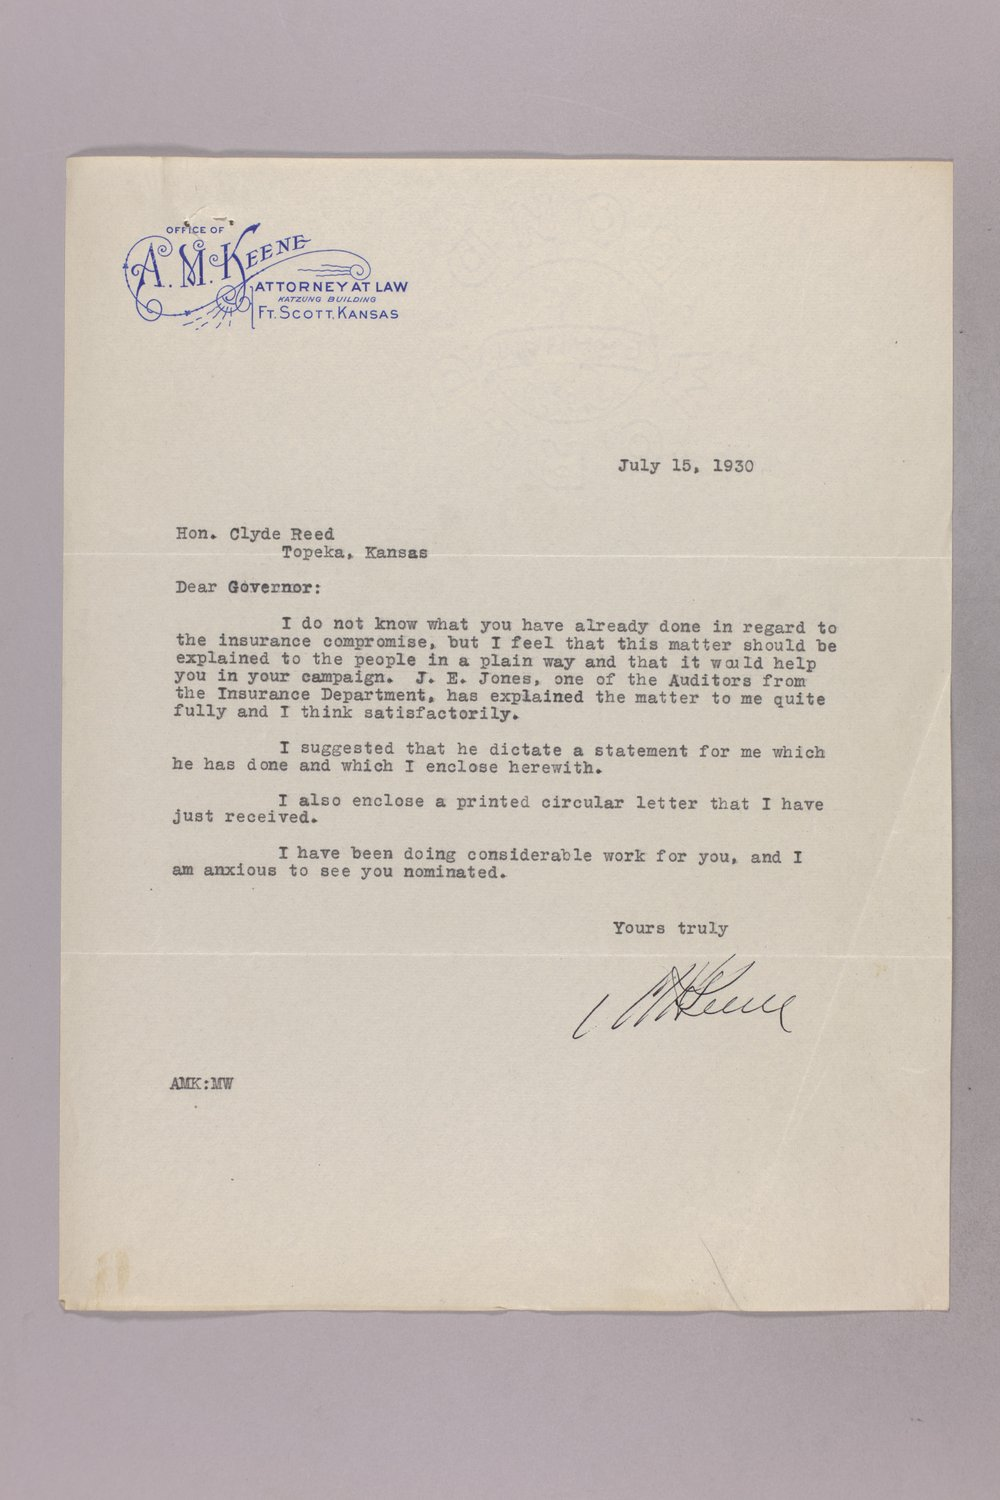 Governor Clyde M. Reed correspondence, hail insurance deduction - 9